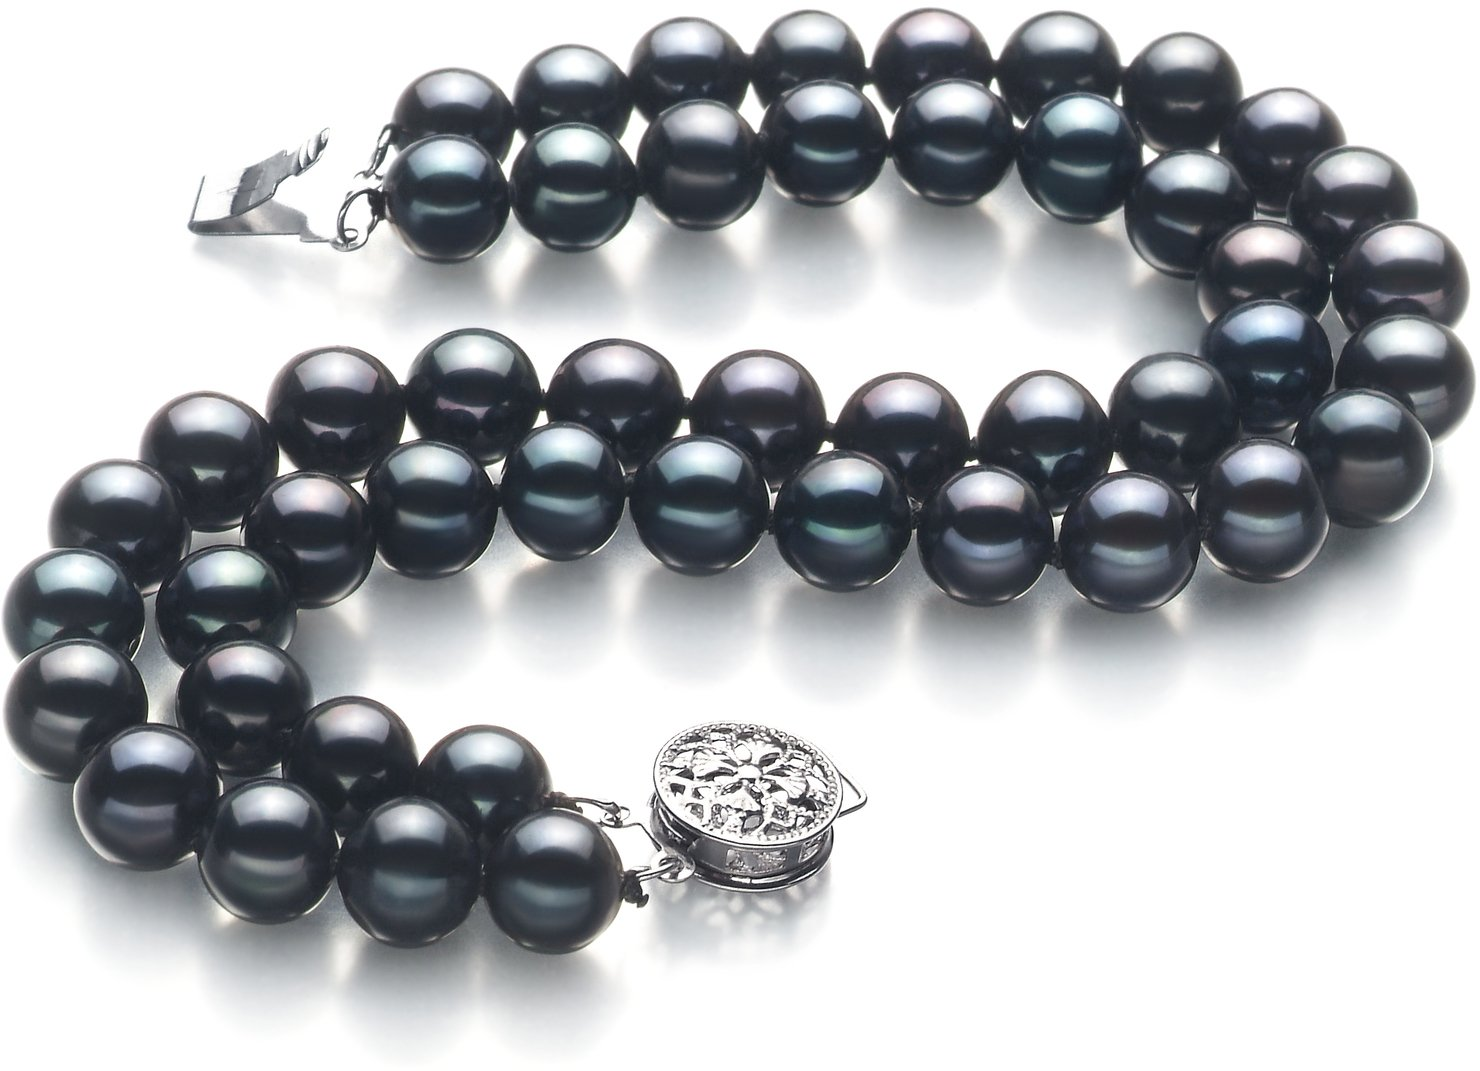 PearlsOnly Henrike Black 6-7mm Double Strand AA Quality Freshwater Cultured Pearl Bracelet-9 in length by PearlsOnly (Image #2)